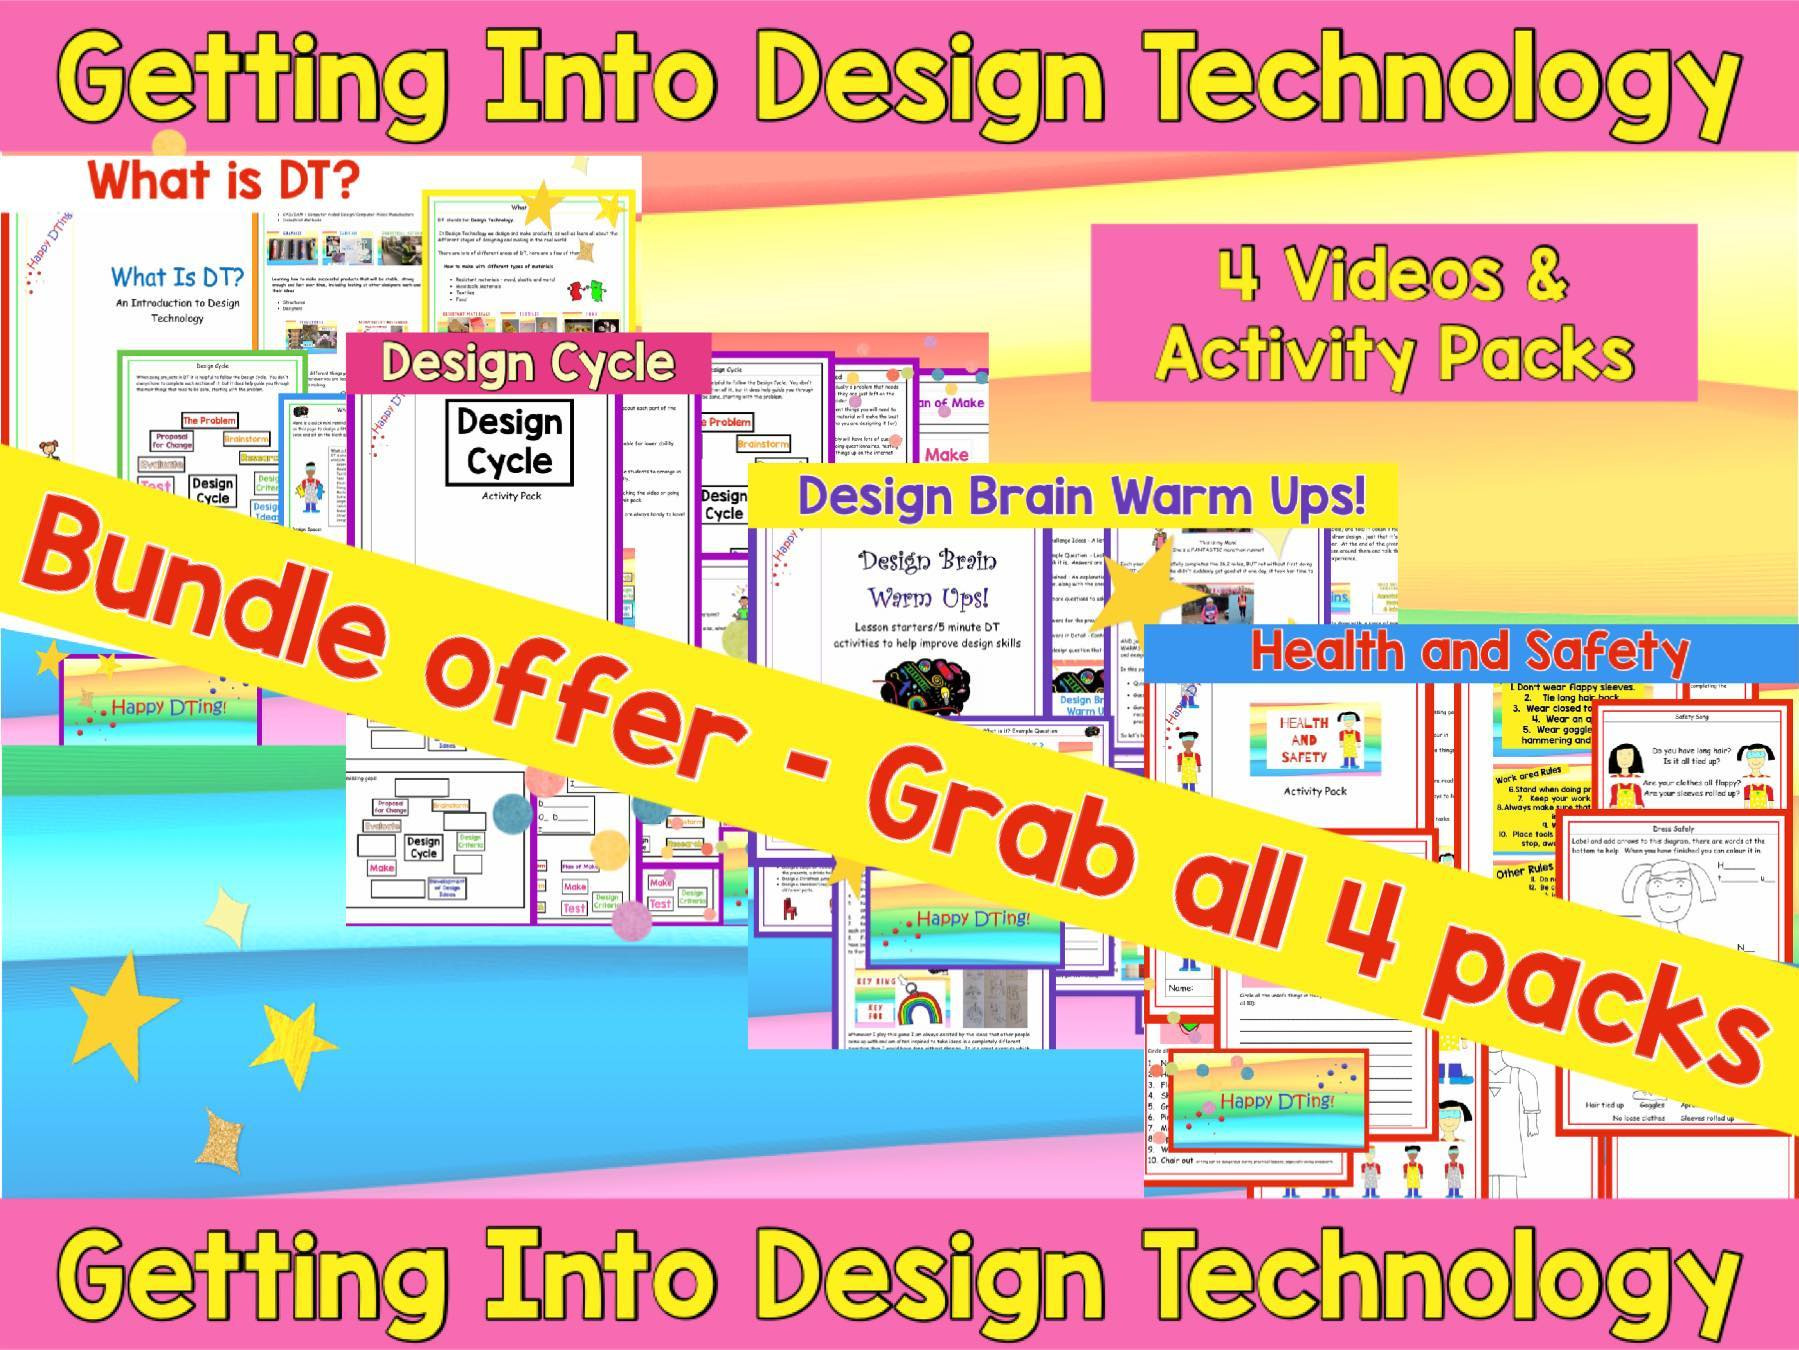 Getting Into Design Technology